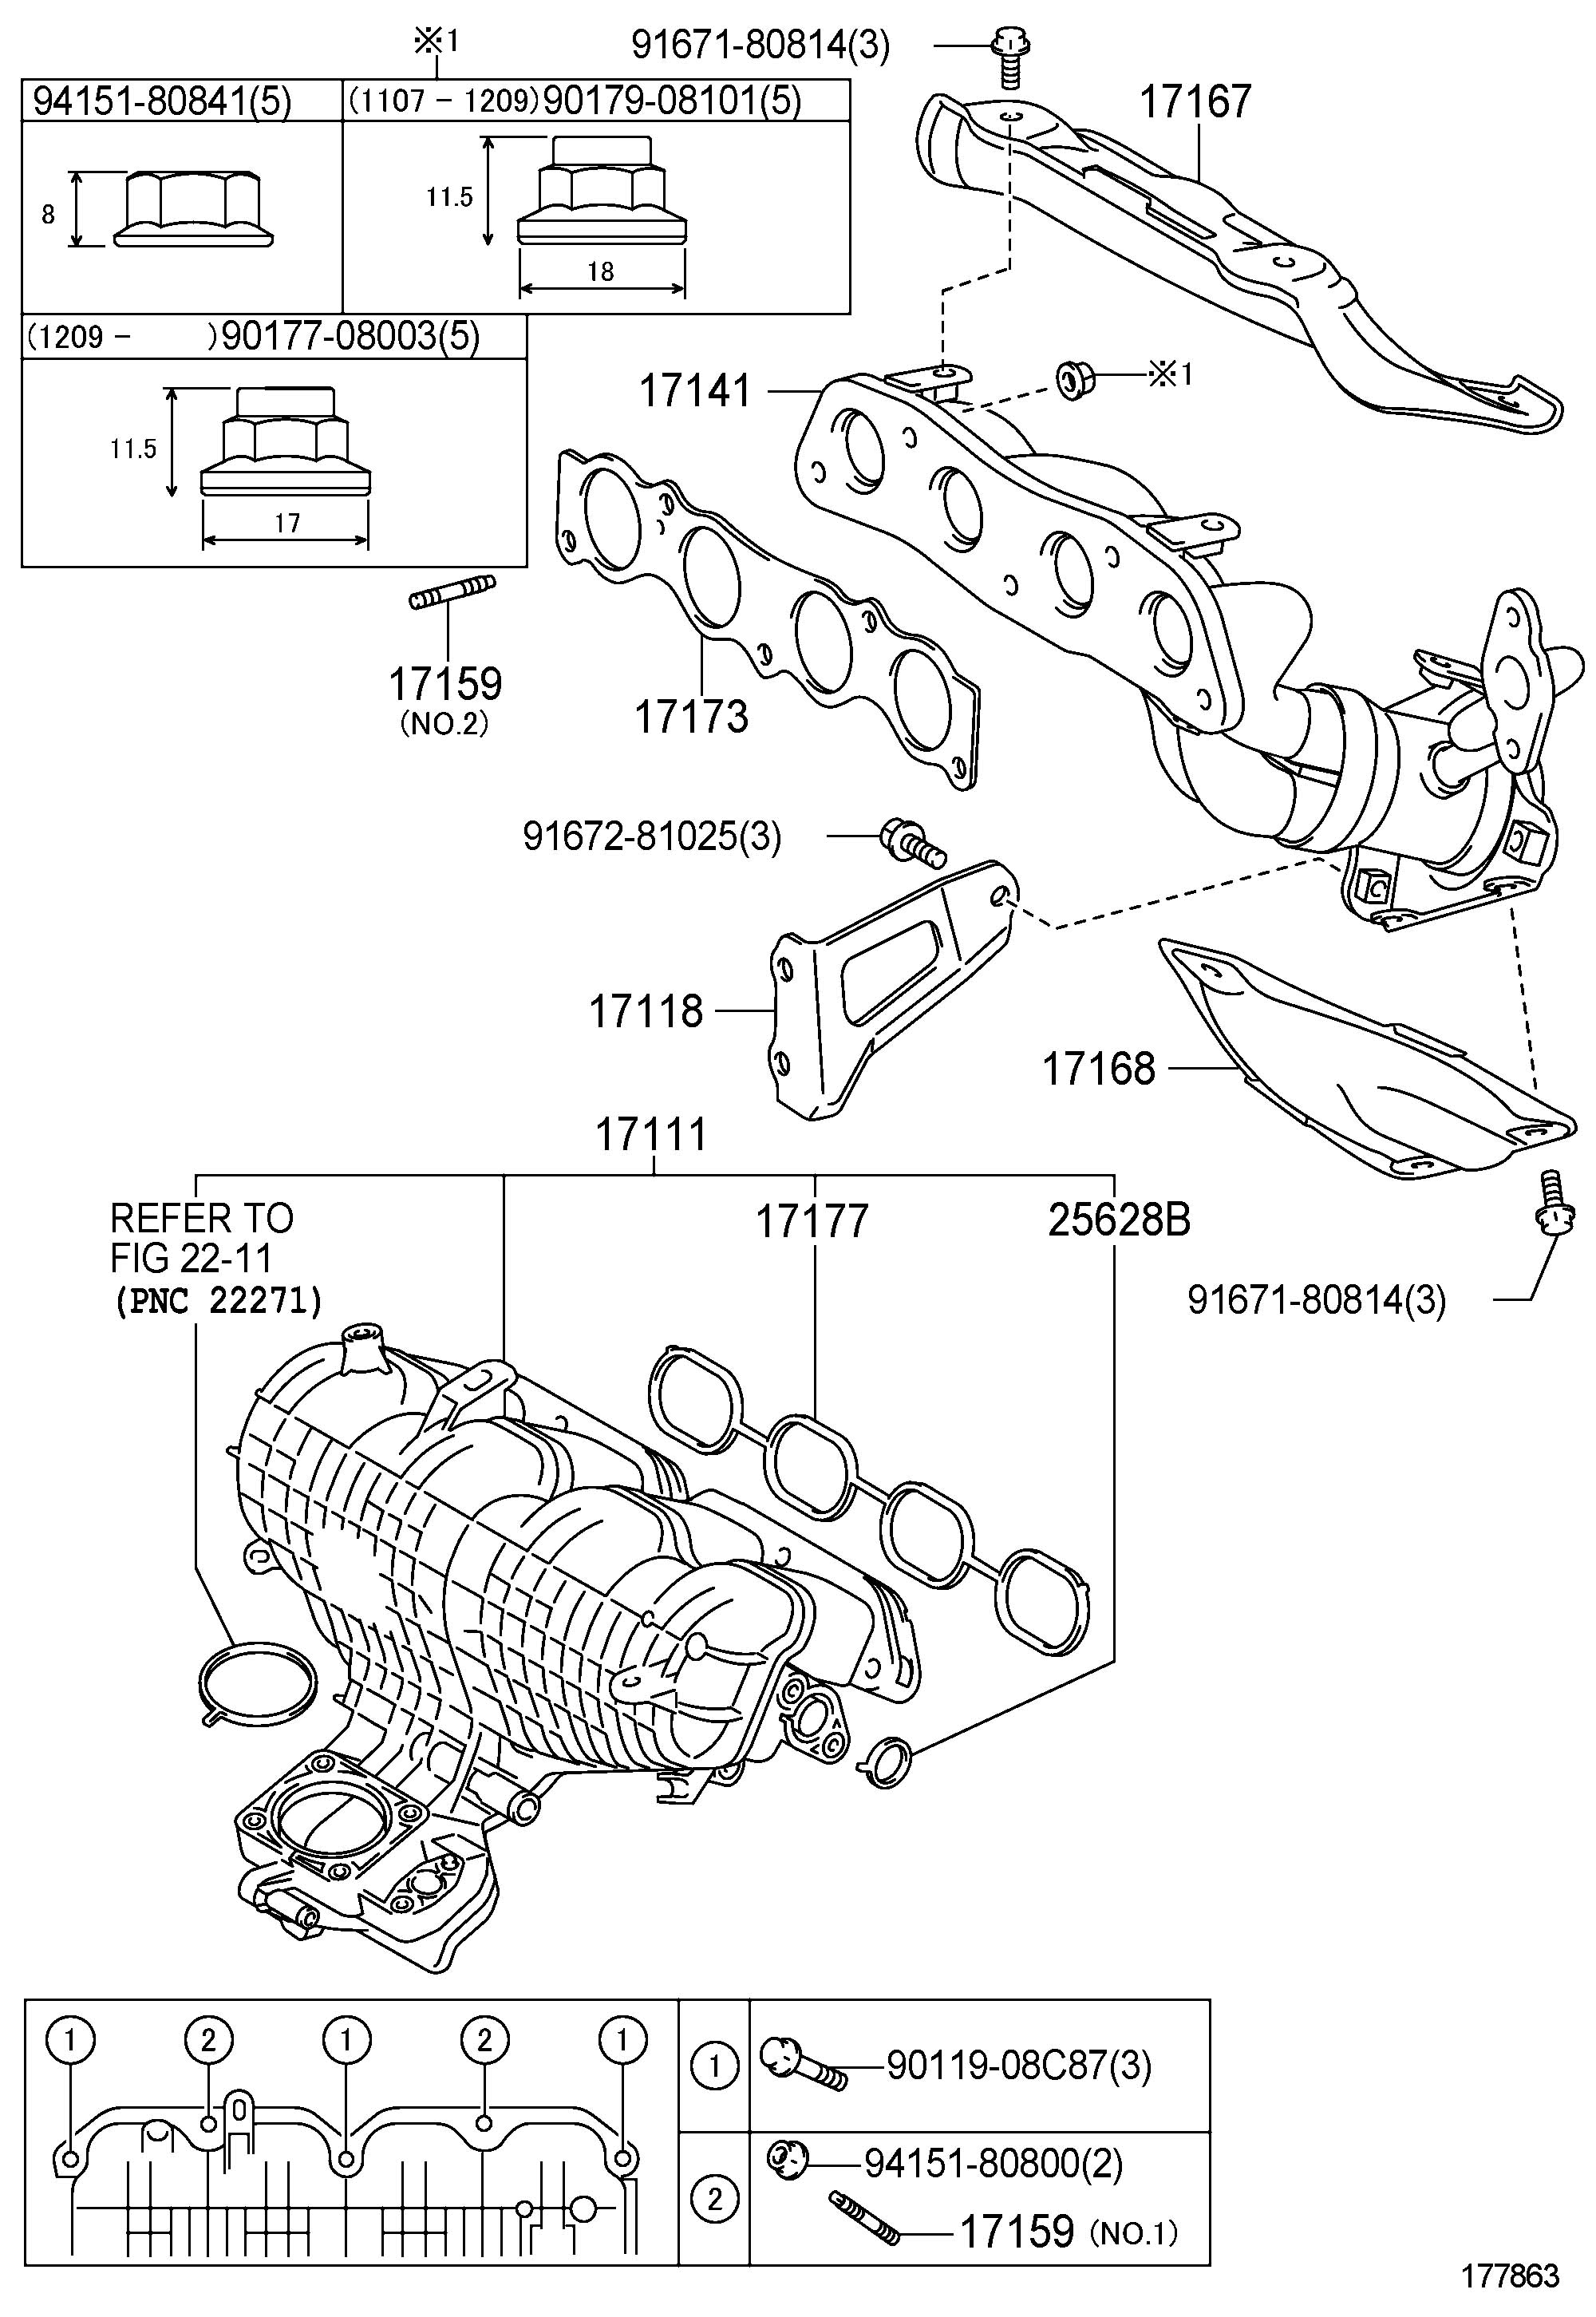 Toyota Prius Gasket Exhaust Manifold To Head Valve